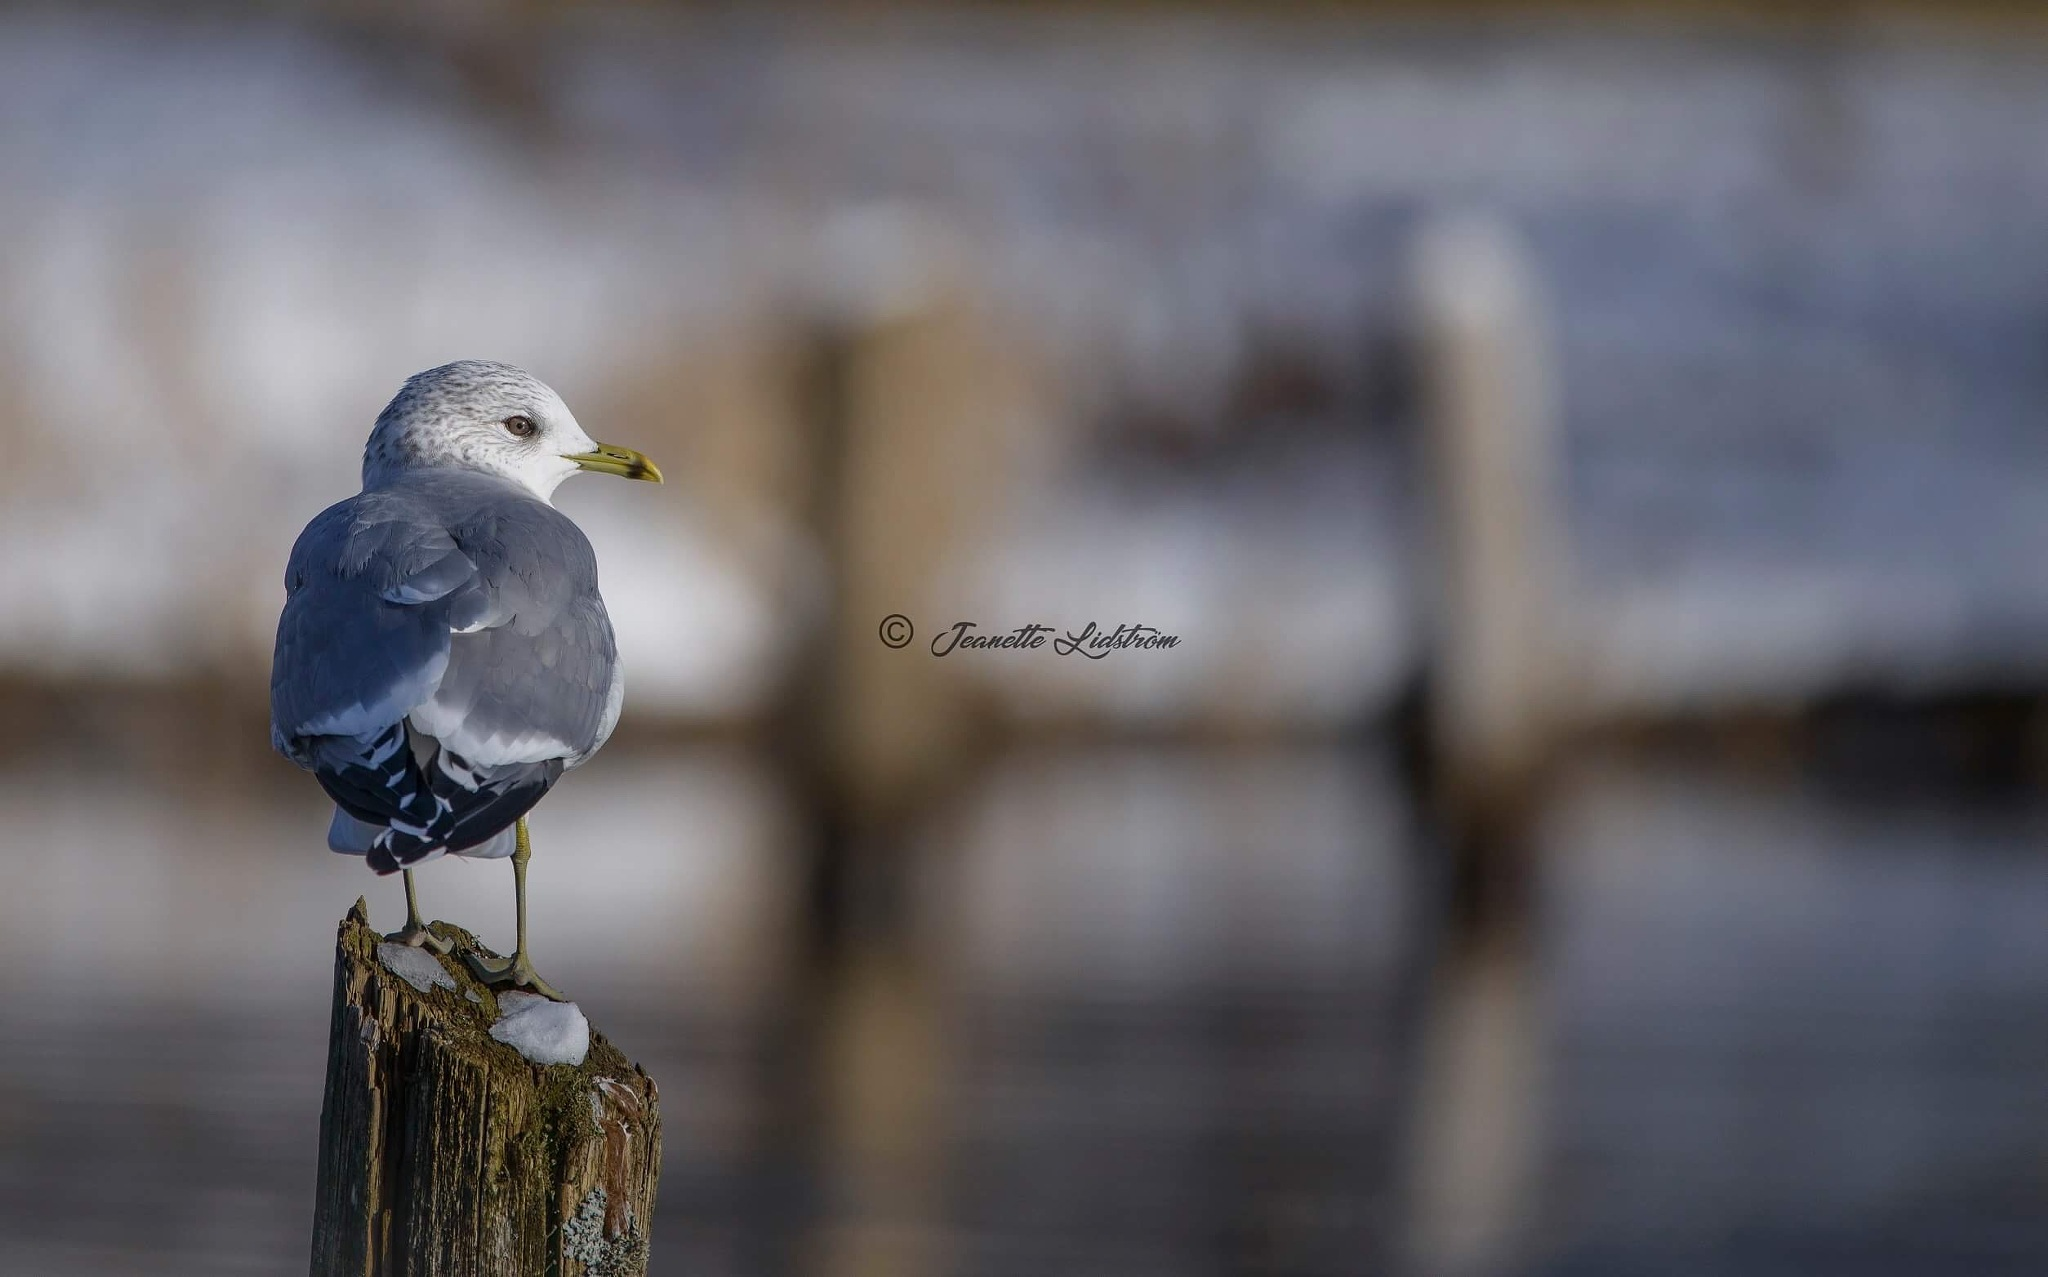 Young seagull by jealid